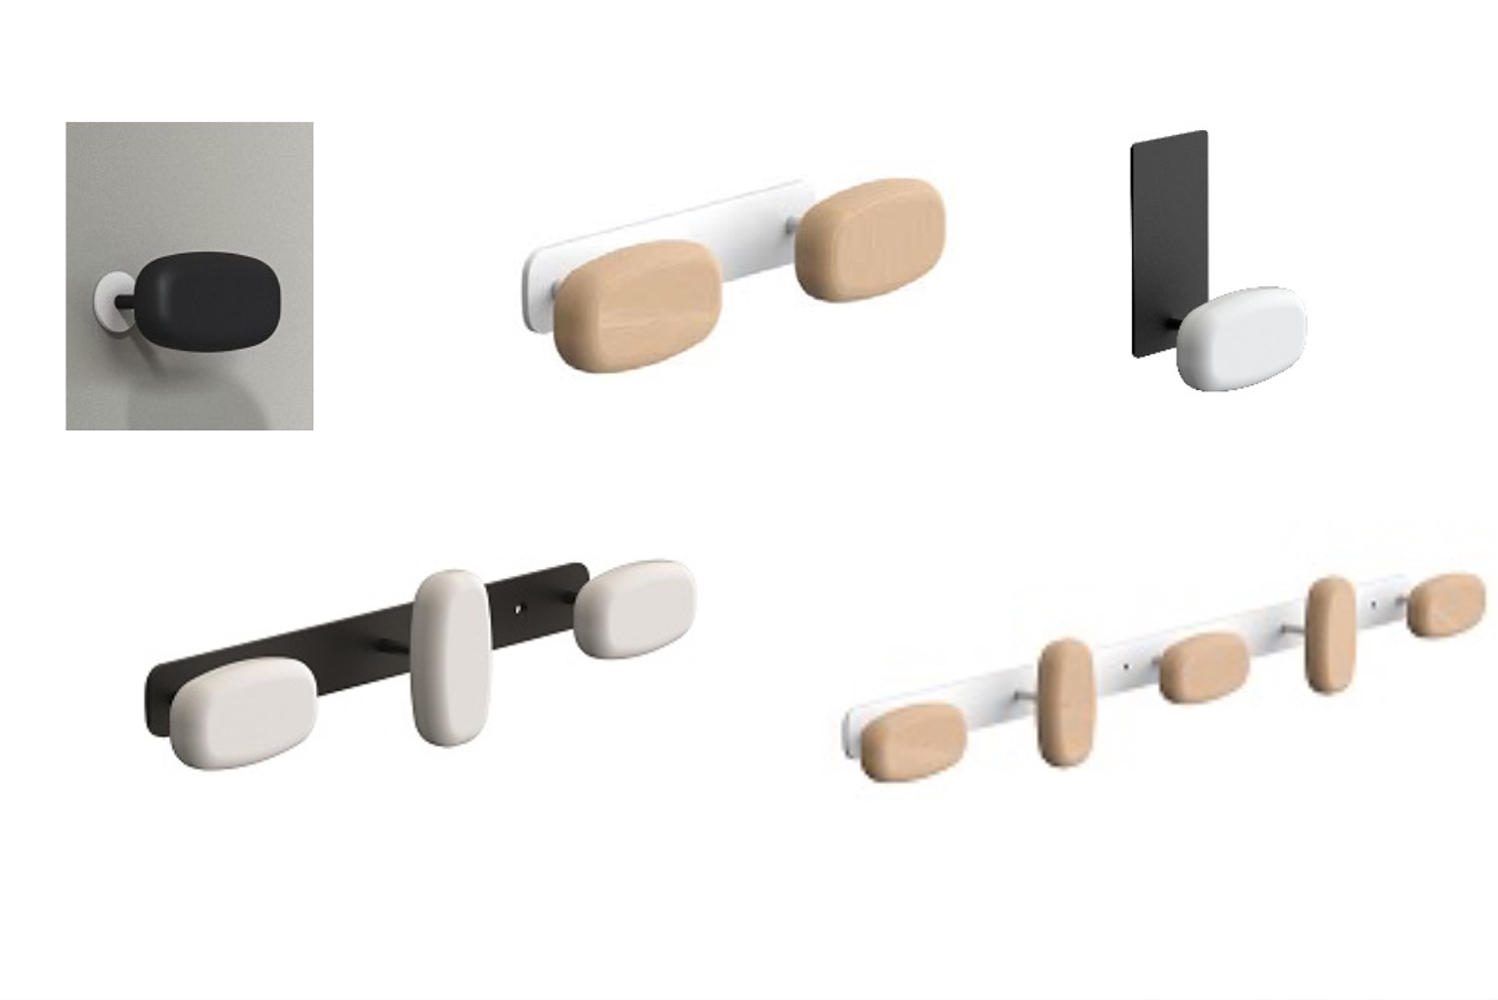 Hook strips and a front-mounted coat hook offer more permanent solutions.